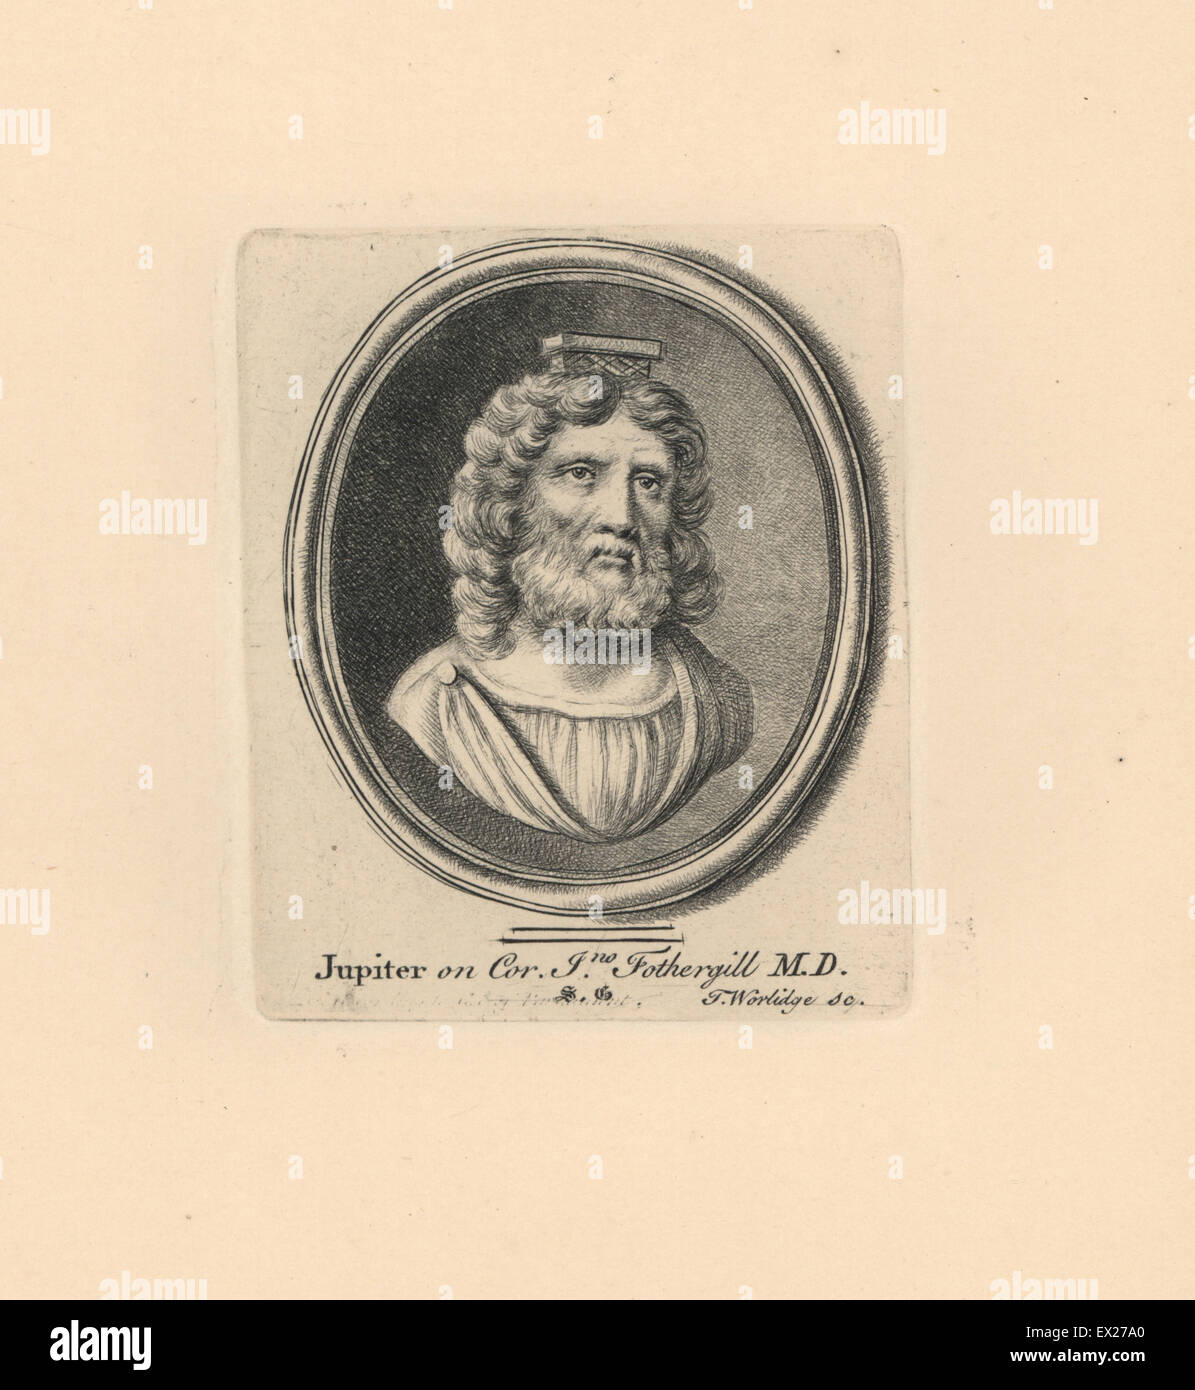 Portrait of Jupiter or Jove, Roman deity, on cornelian from the collection of John Fothergill M.D. Copperplate engraving - Stock Image